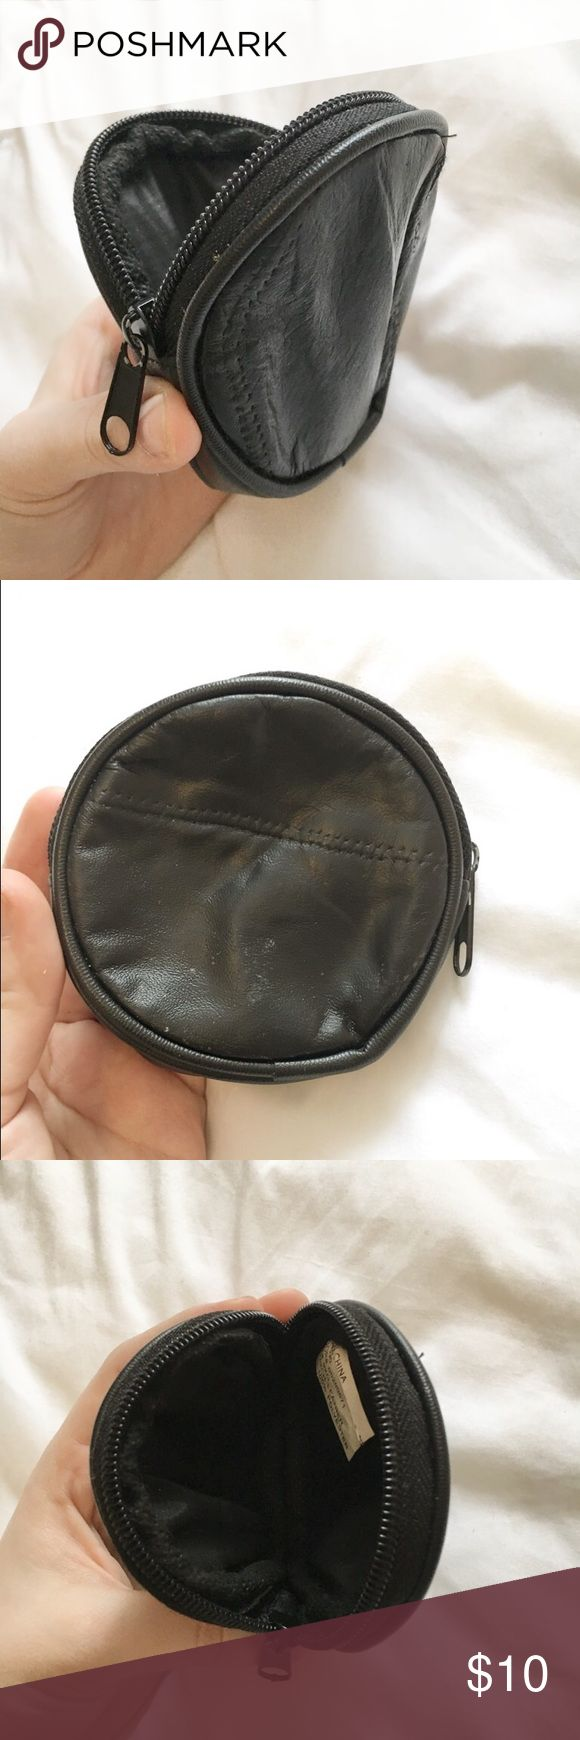 "Black Leather Cosmetic Bag // Black cosmetic bag or change purse. Small ""emergency"" pouch. So cute and dainty! 🌻 American Apparel Bags Cosmetic Bags & Cases"